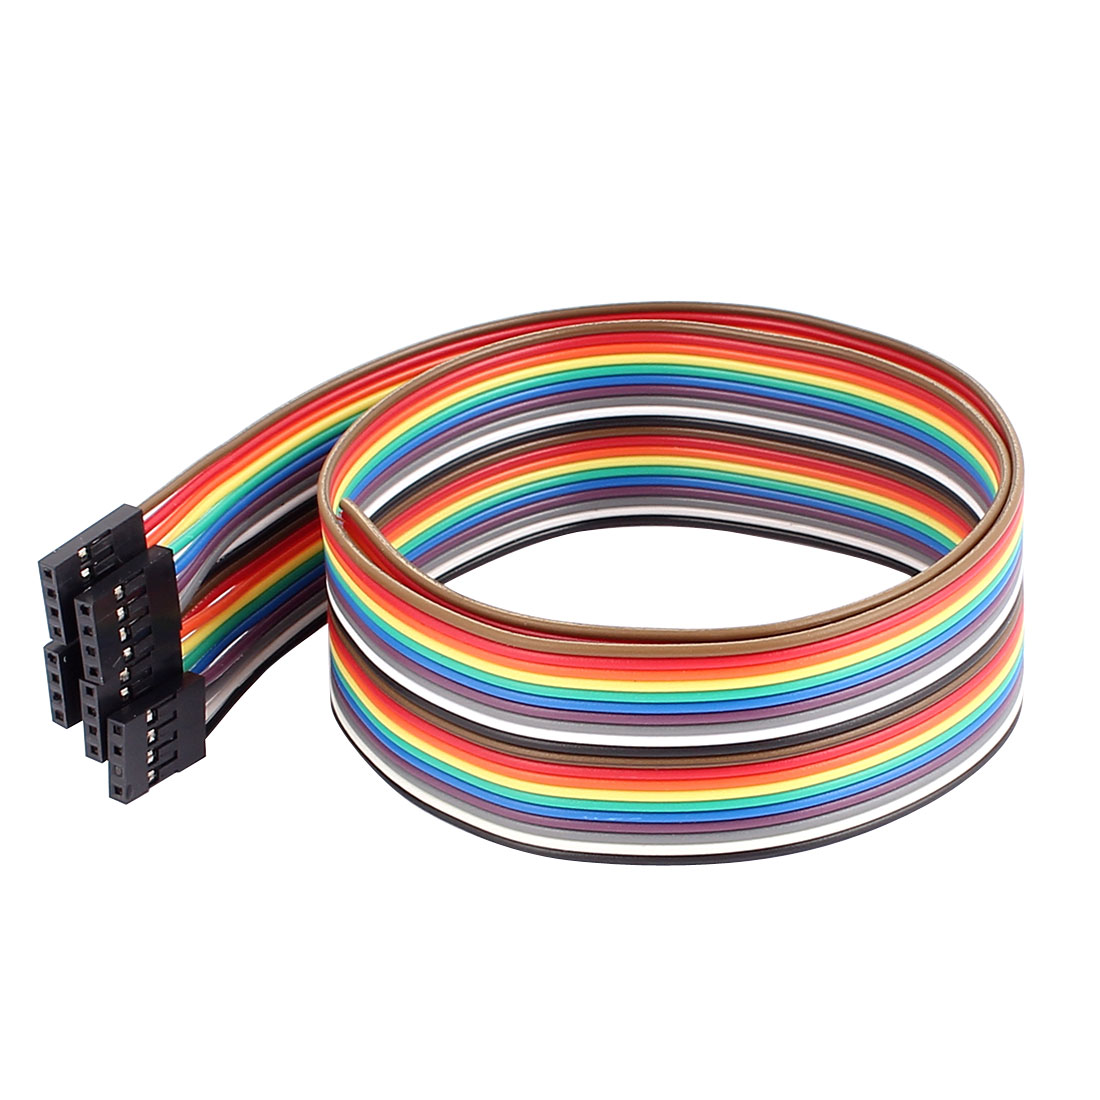 5Pcs 50cm Length Female 2.54mm Pitch 4P Single Head Jumper Wire Cable